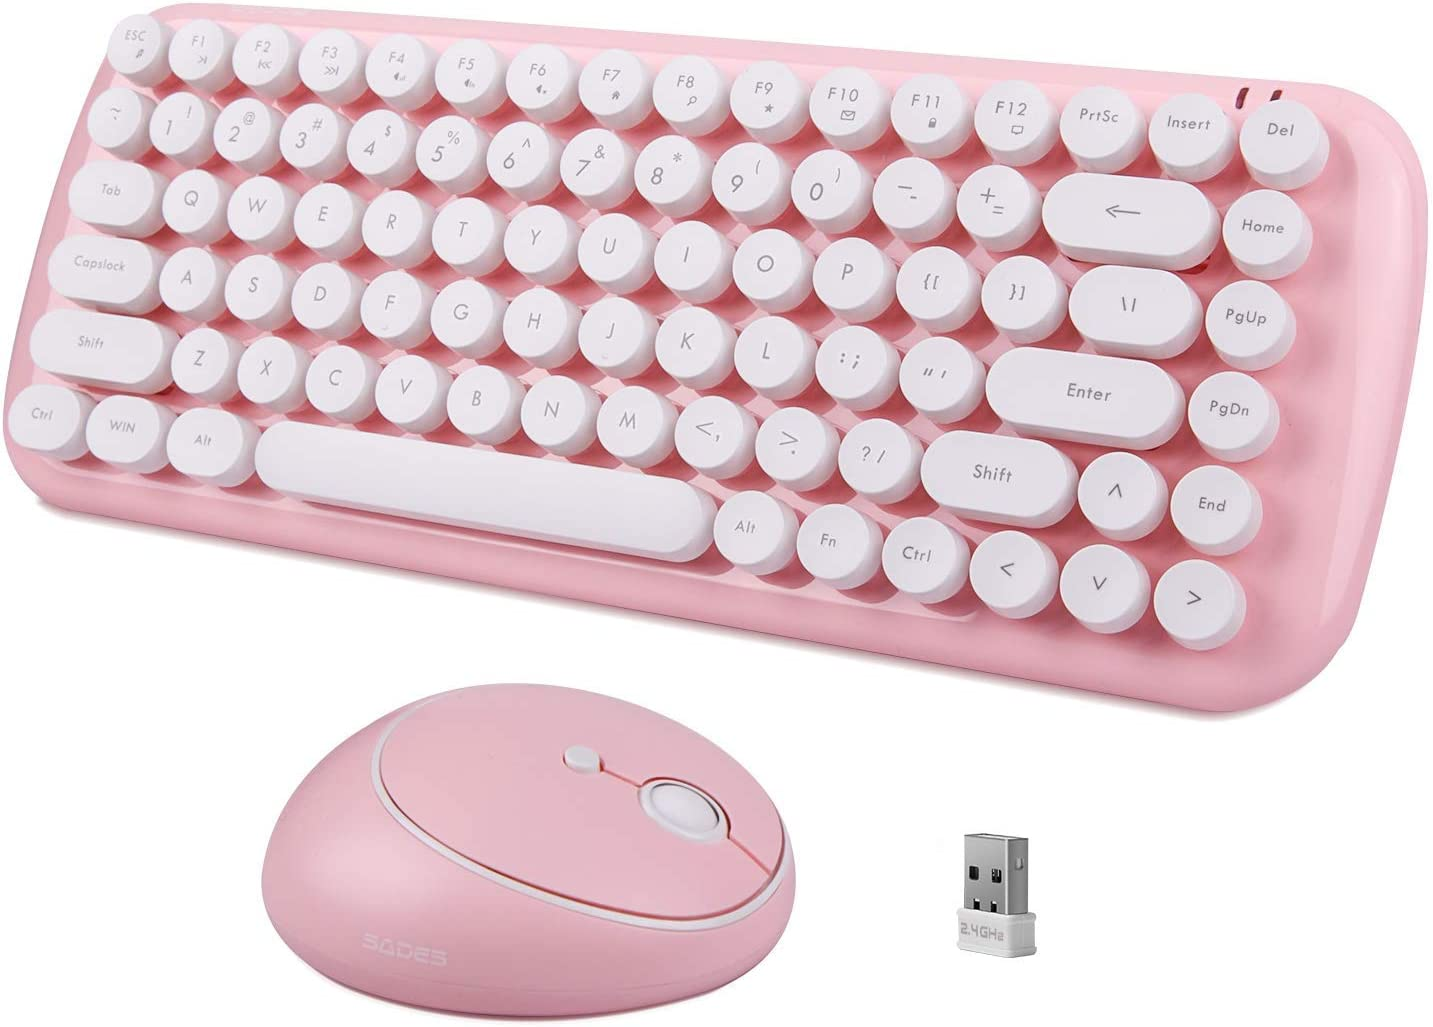 Wireless Keyboard and Mouse Combo, 2.4GHz USB Mini Portable Wireless Pink Keyboard, Cute Round Retro Typewriter Keycaps and Wireless Mouse for Computer, Laptop, Desktops, PC, Mac